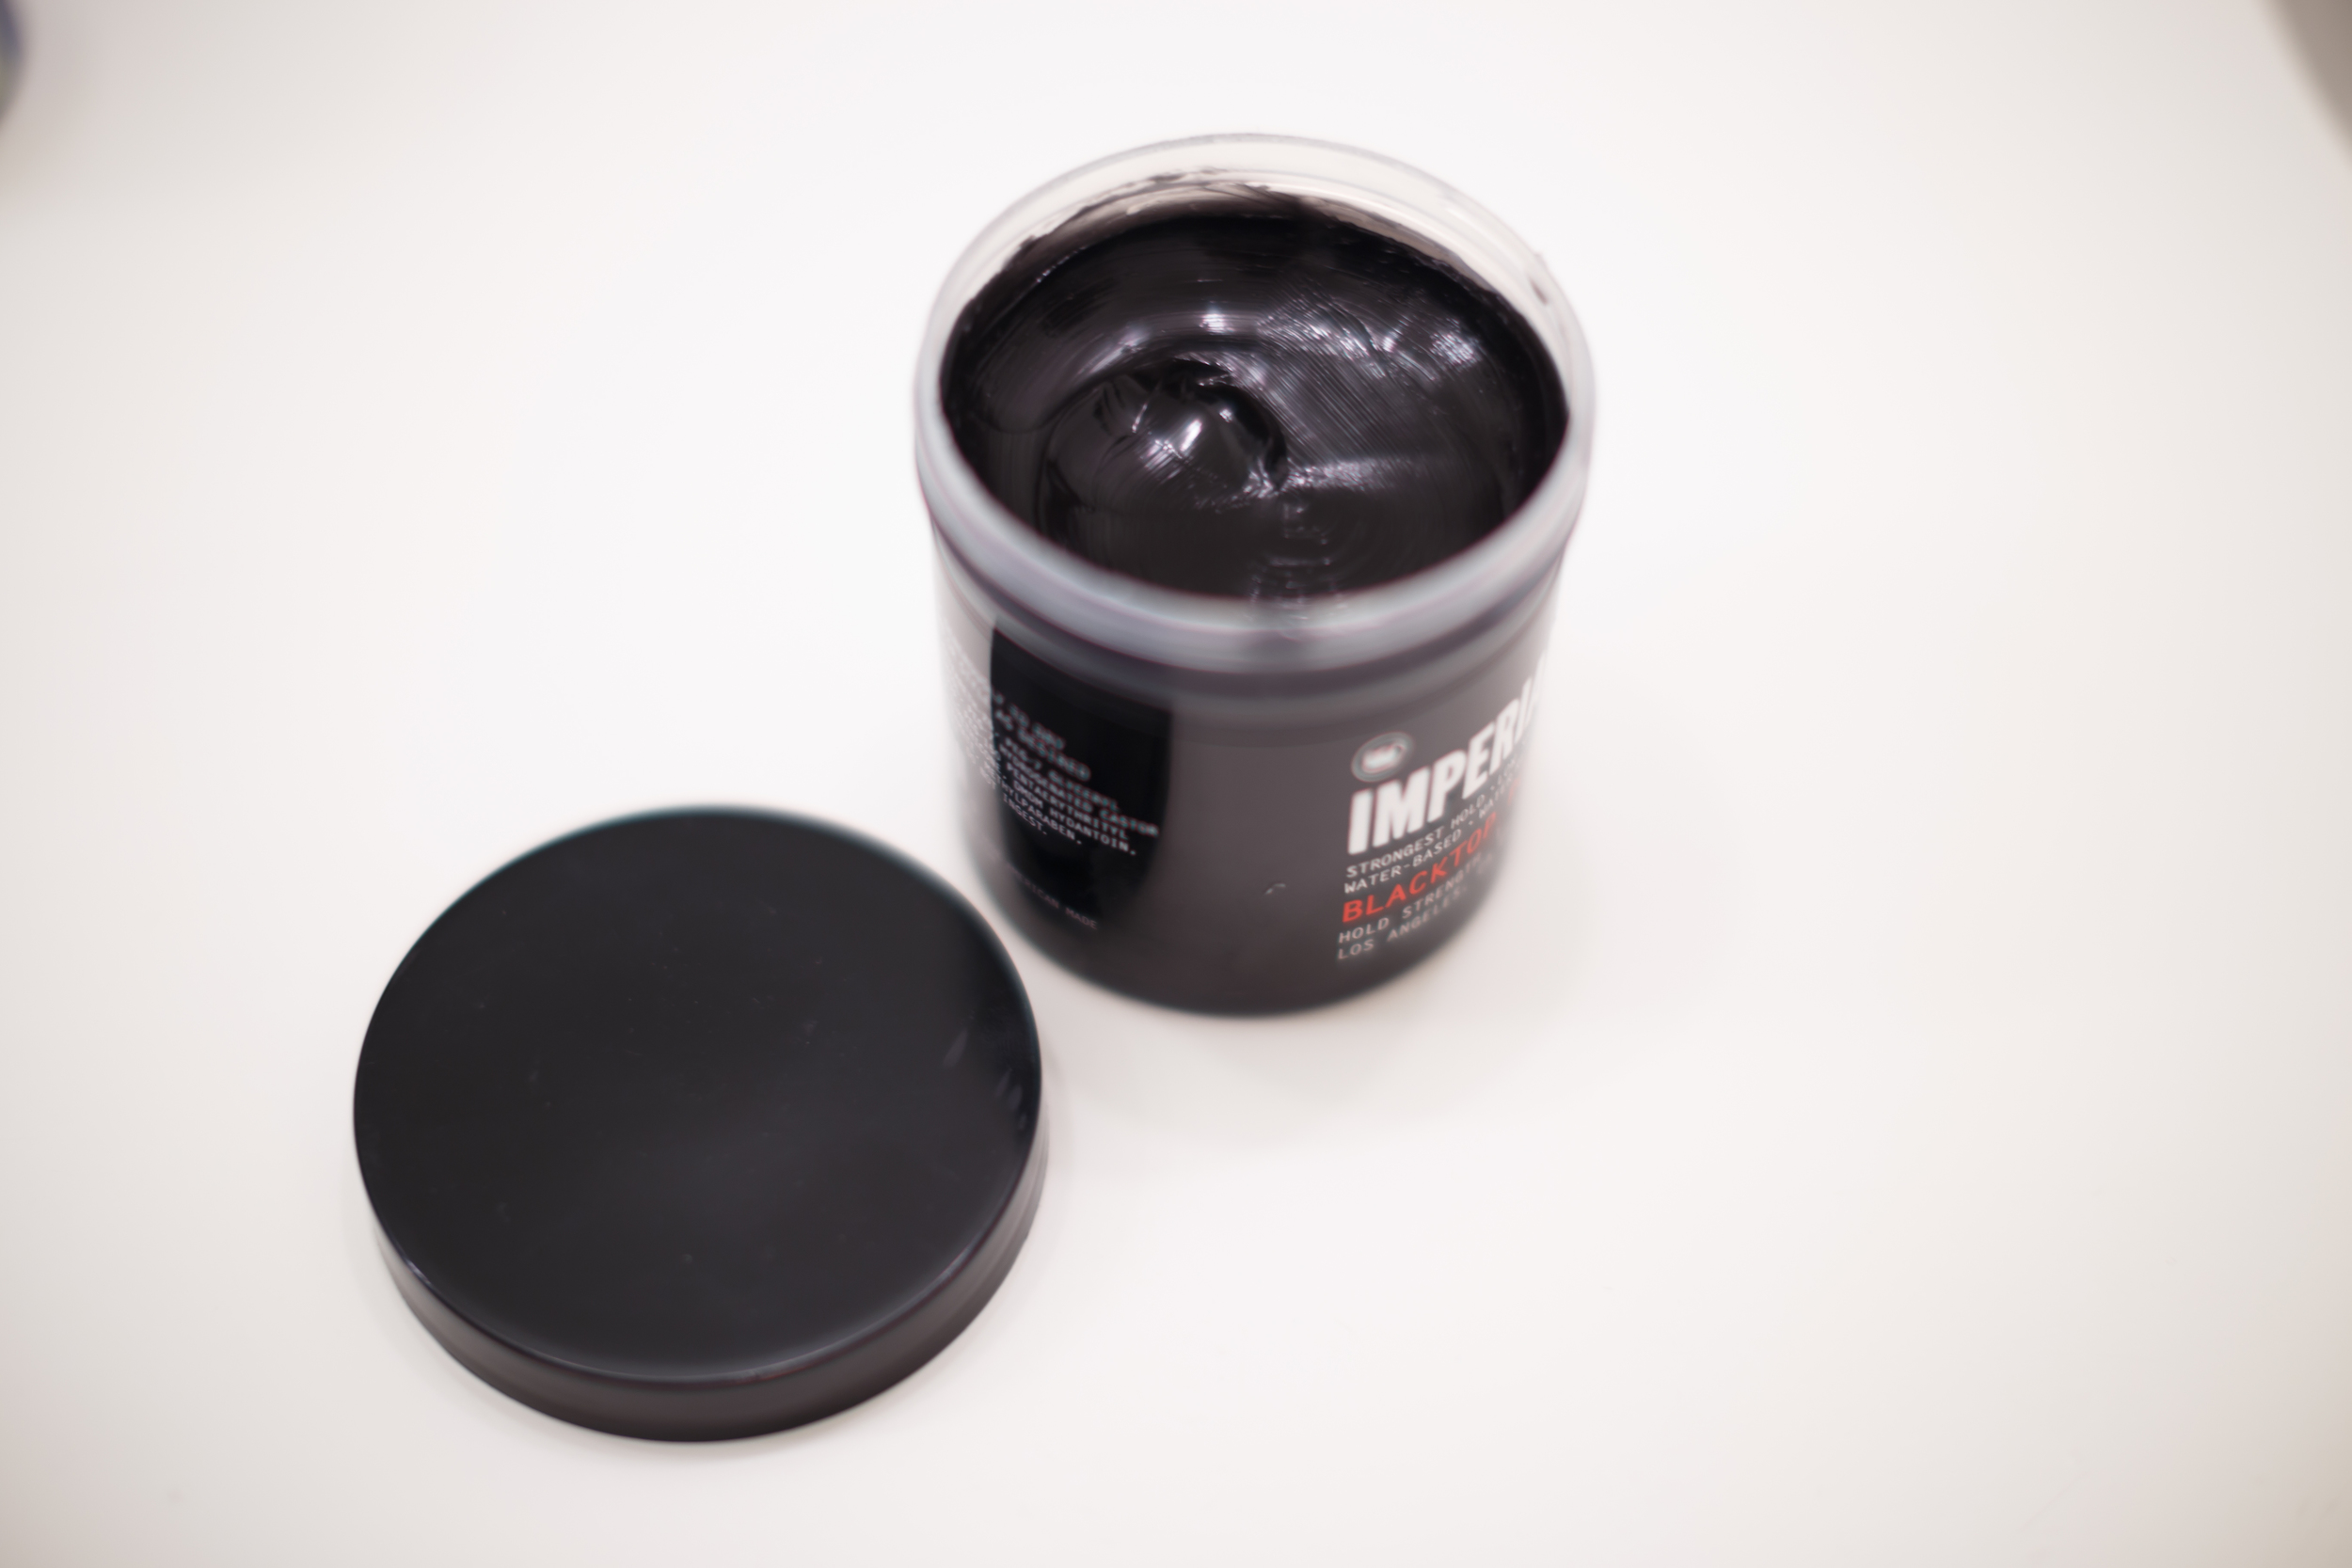 Imperial Blacktop Pomade Water-Based Water Based Barber Products Classic Pomp ThePomp Pompadour Open Dark